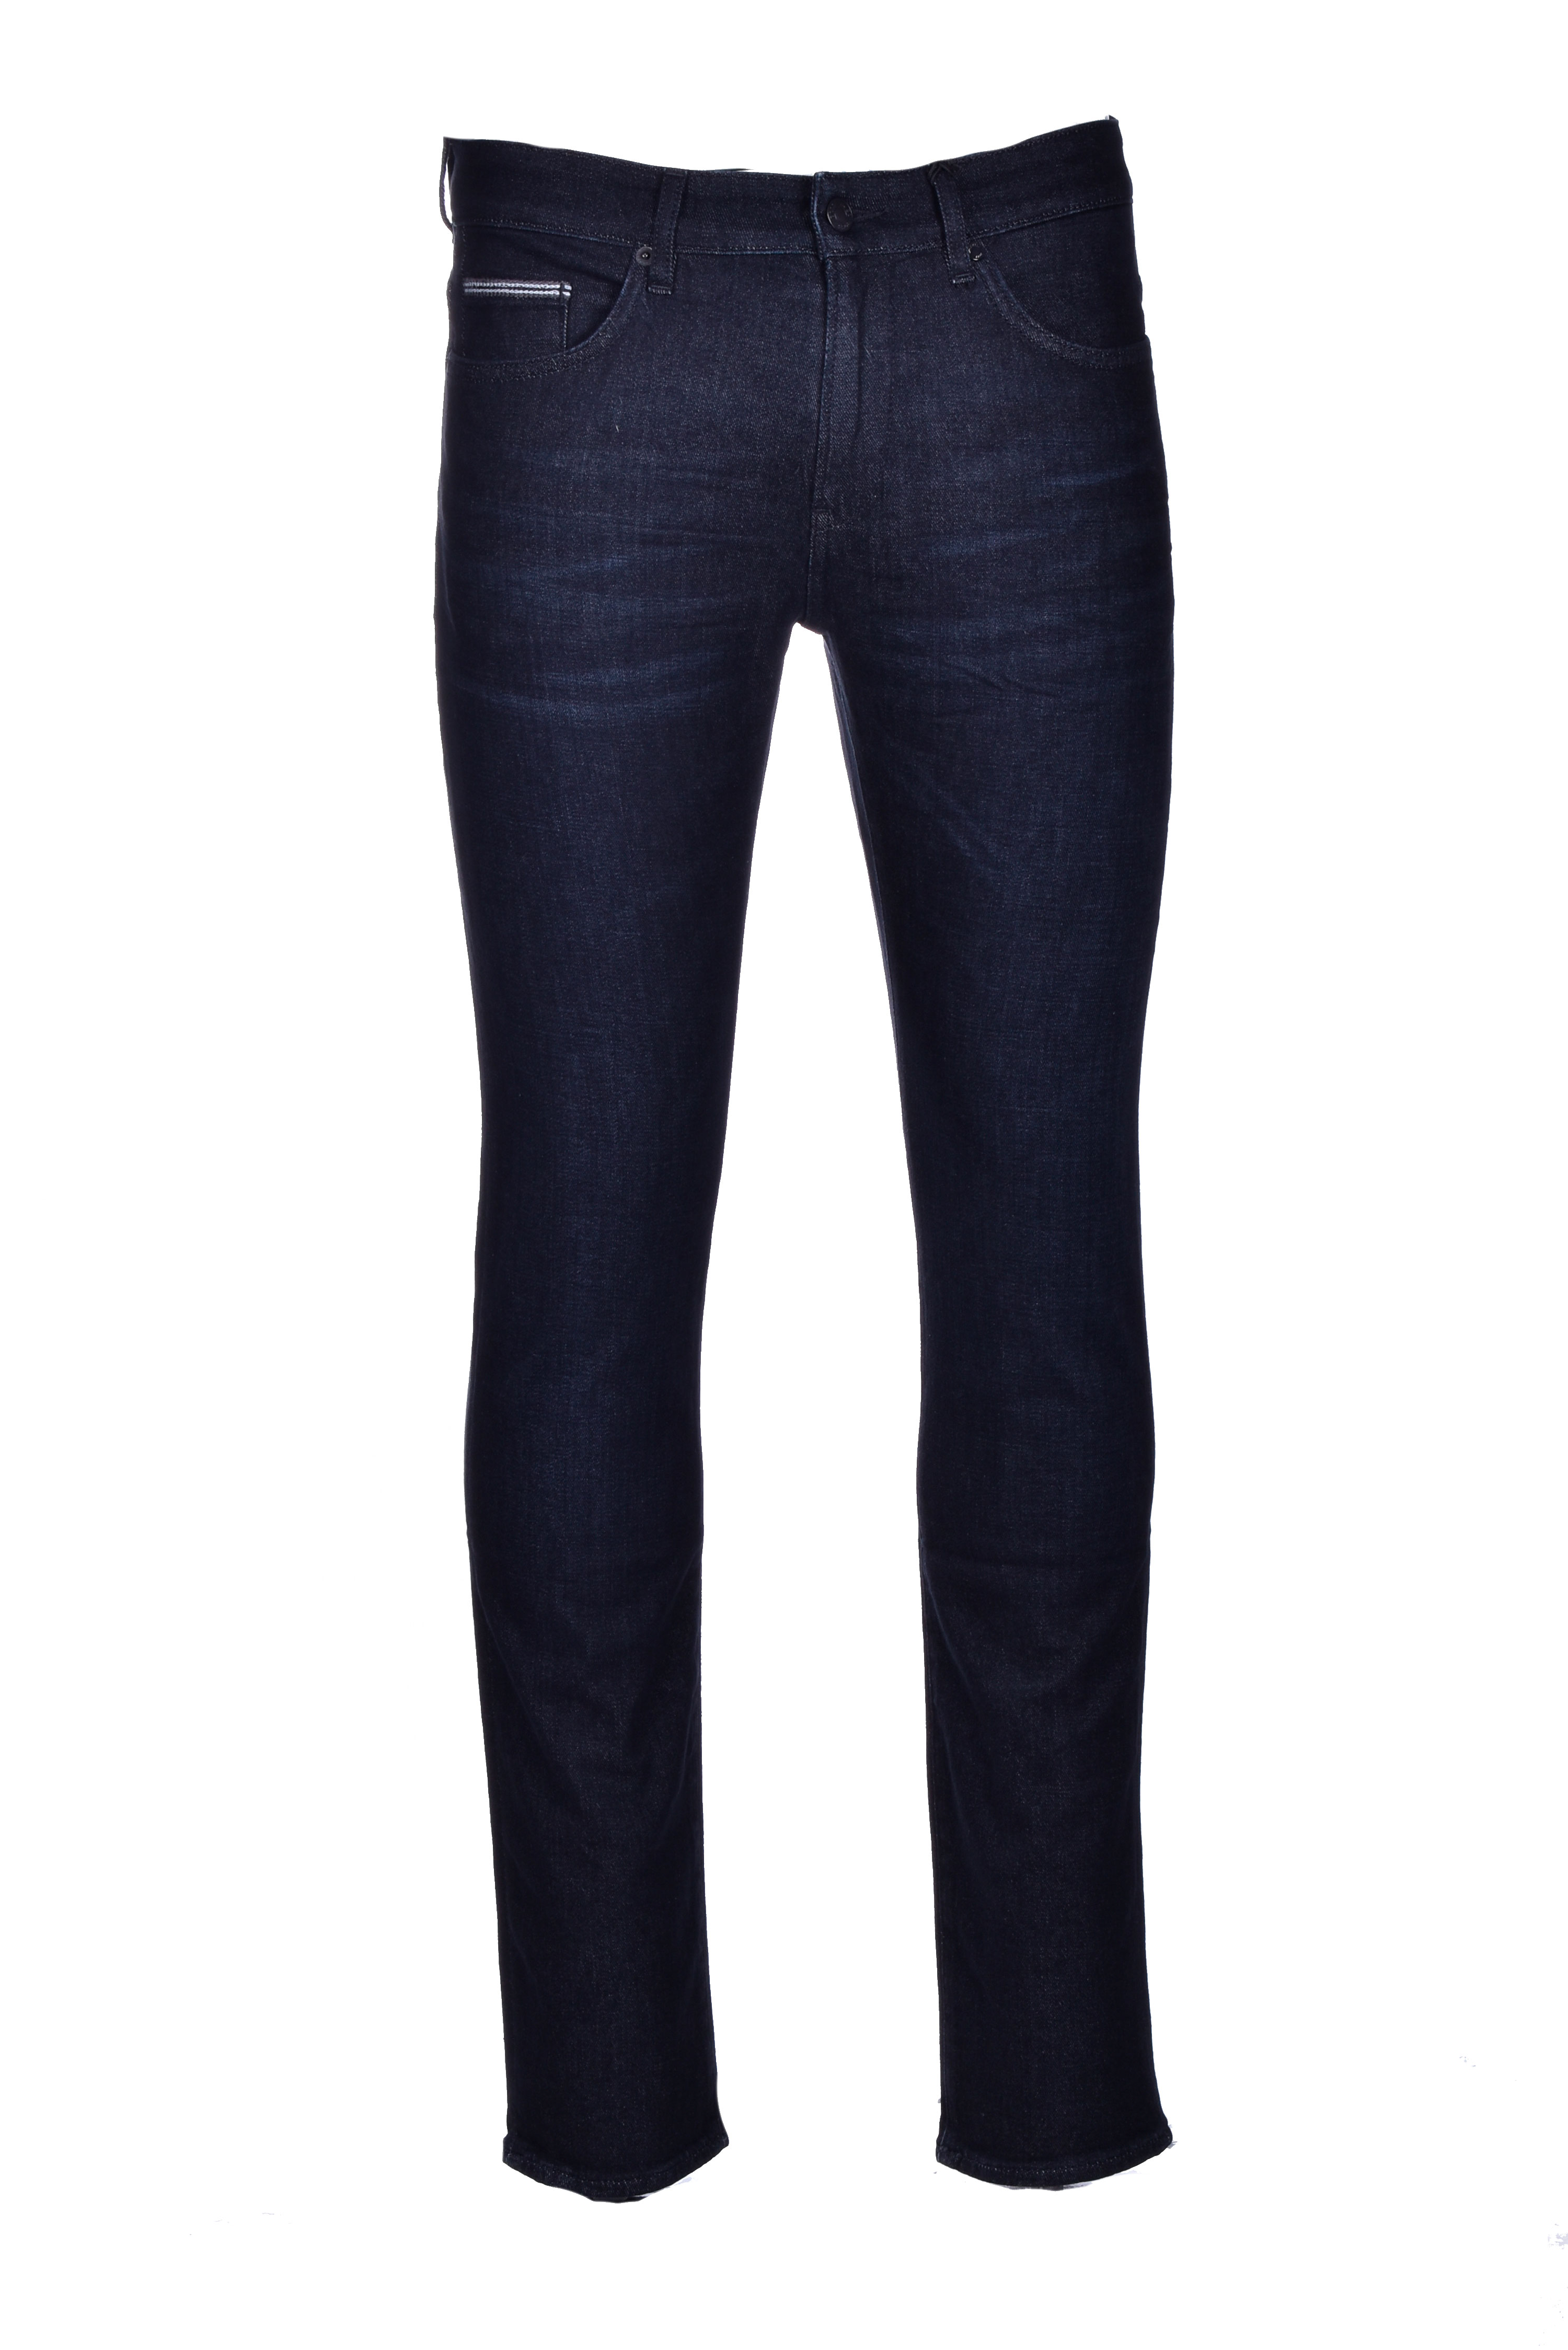 delaware3 Extra slim fit jeans BOSS   Jeans   50437926003